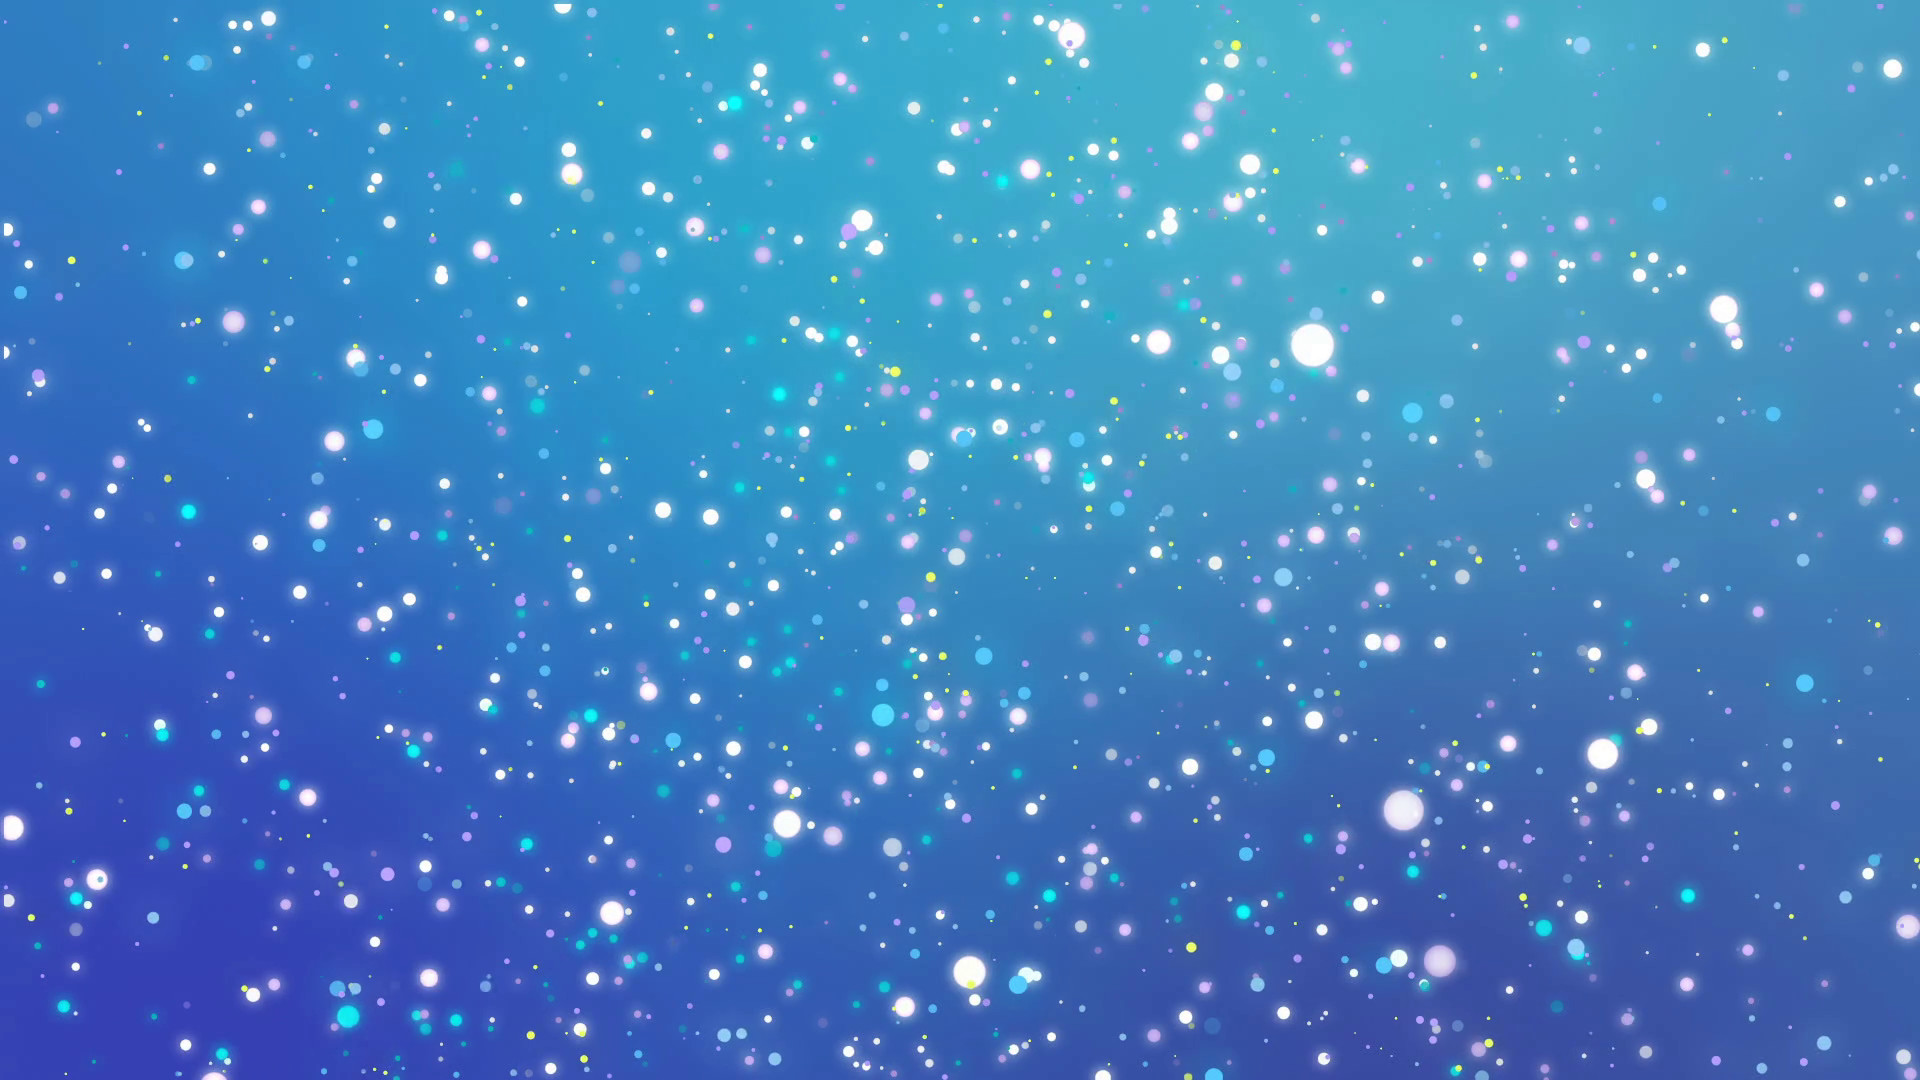 1920x1080 Glitter blue purple background with sparkling colorful light particles  Motion Background - VideoBlocks